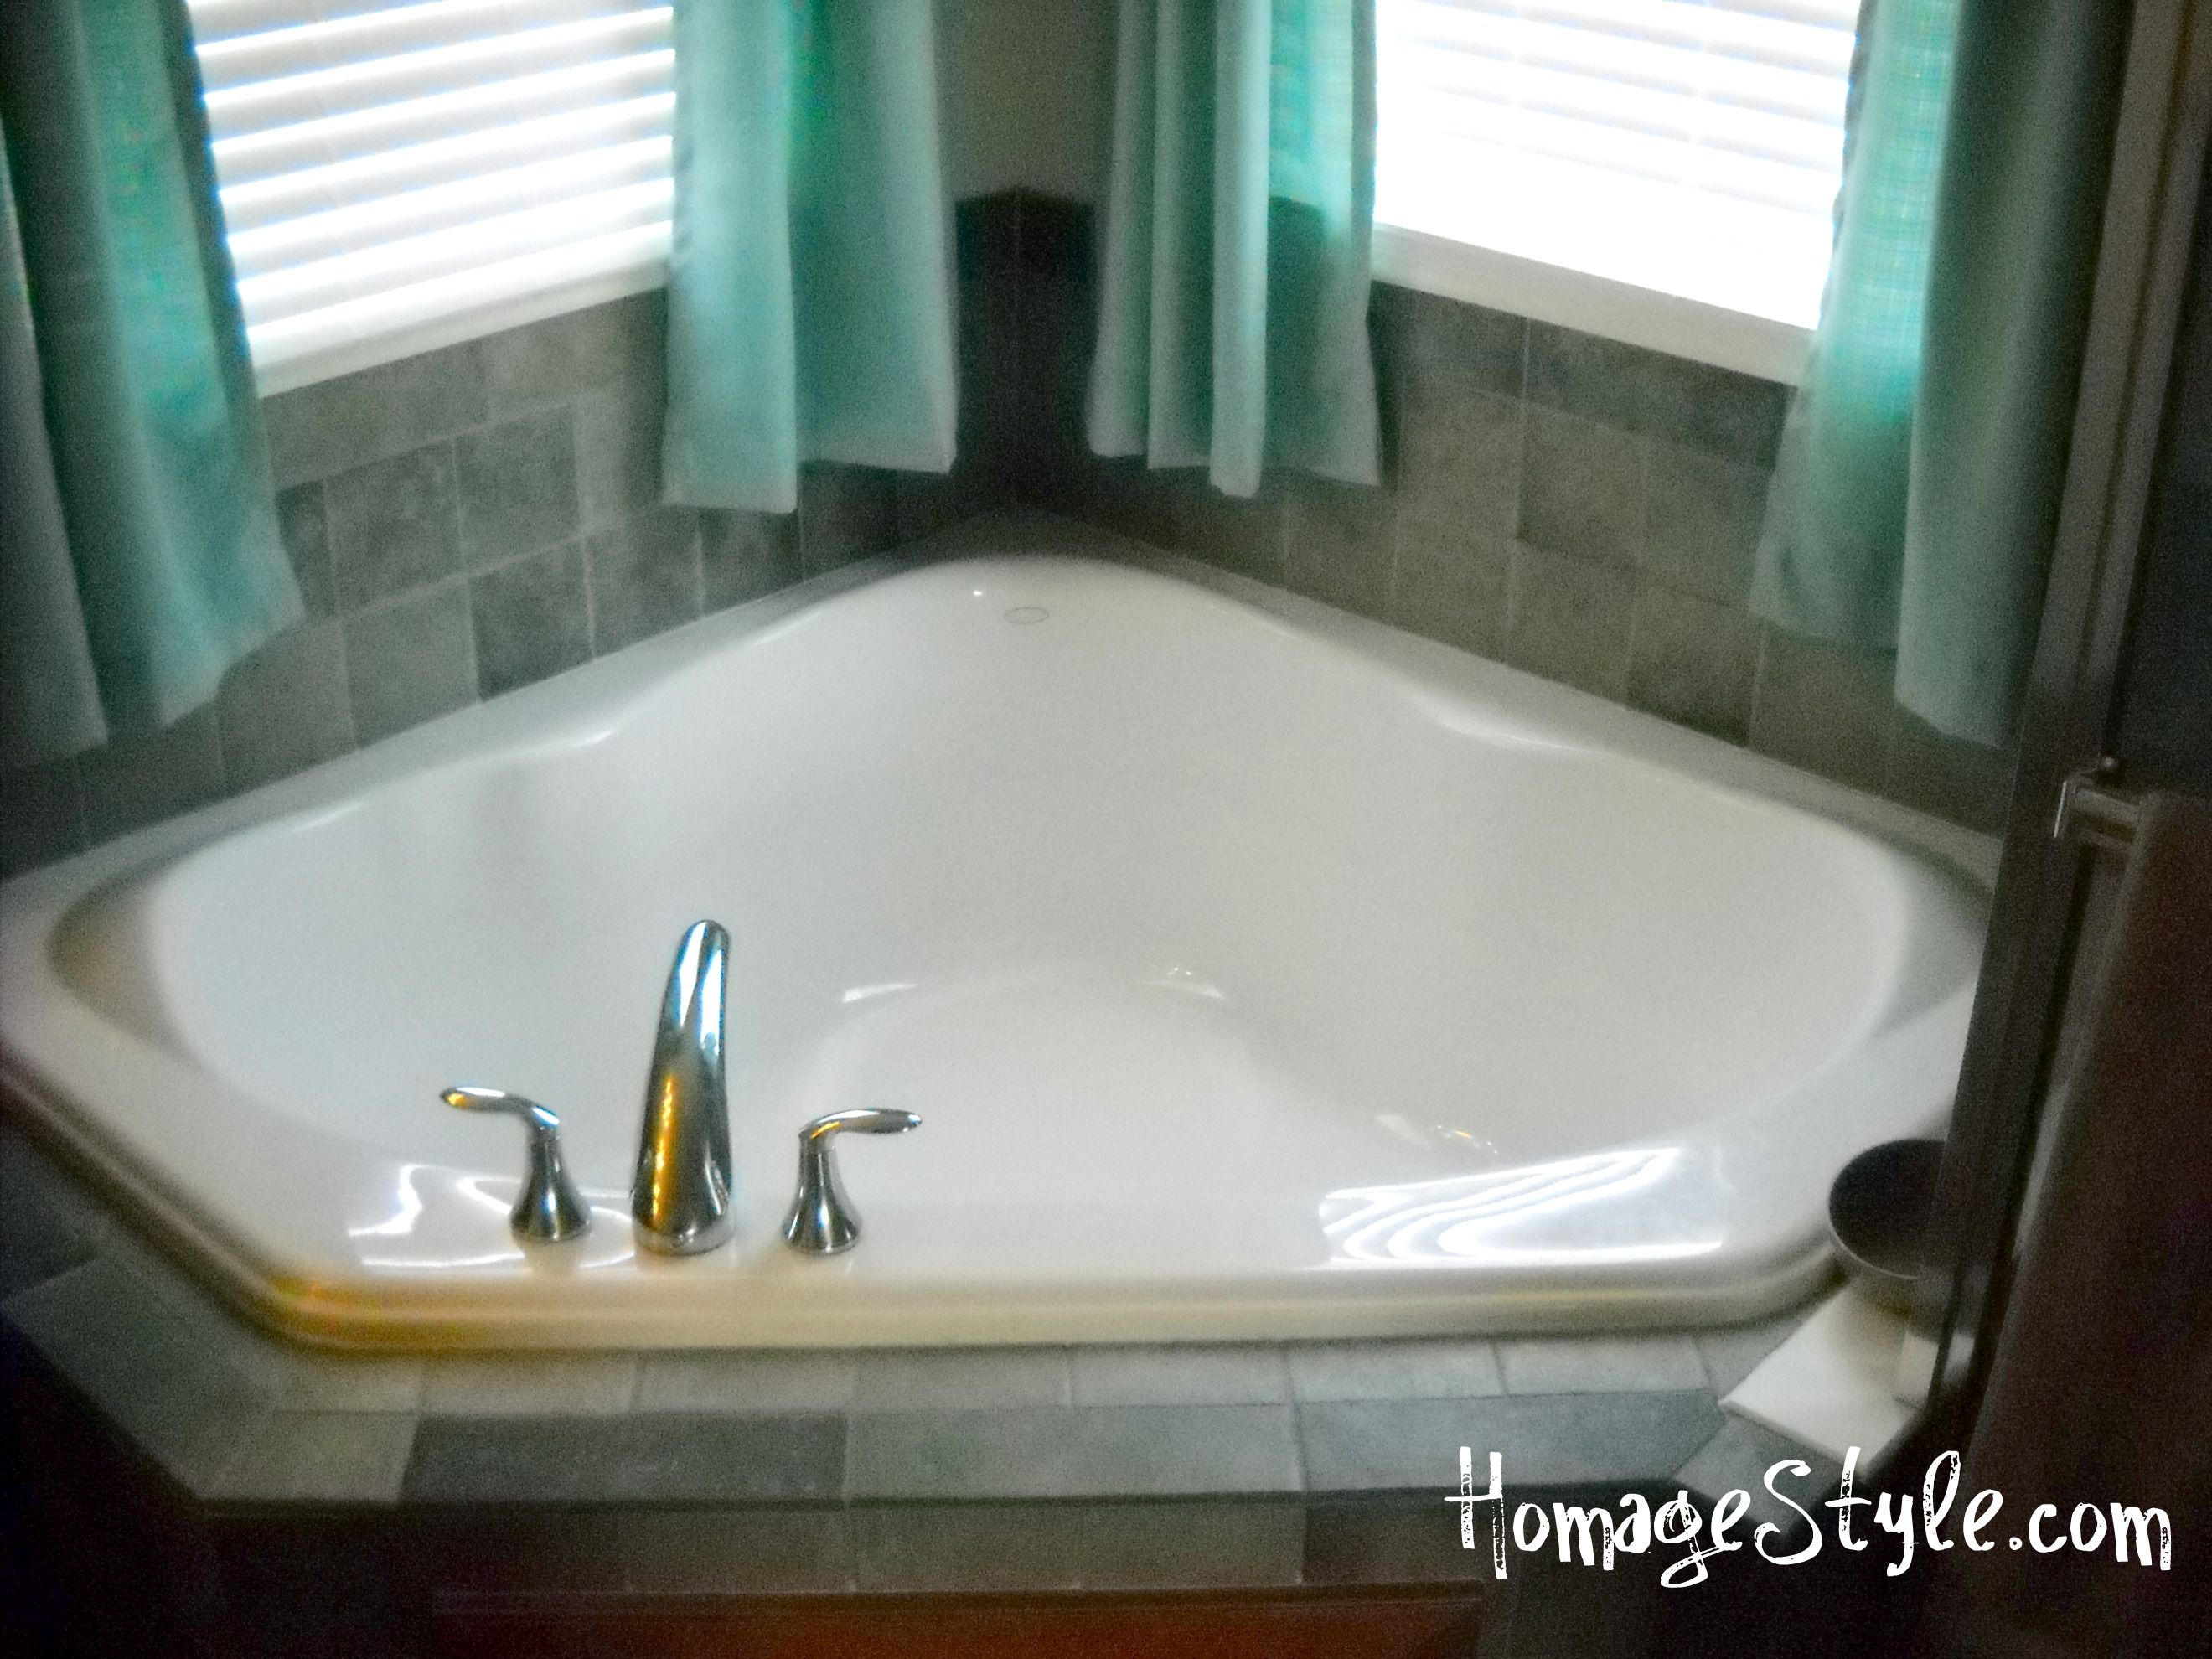 garden tub | Leave a Reply Cancel reply